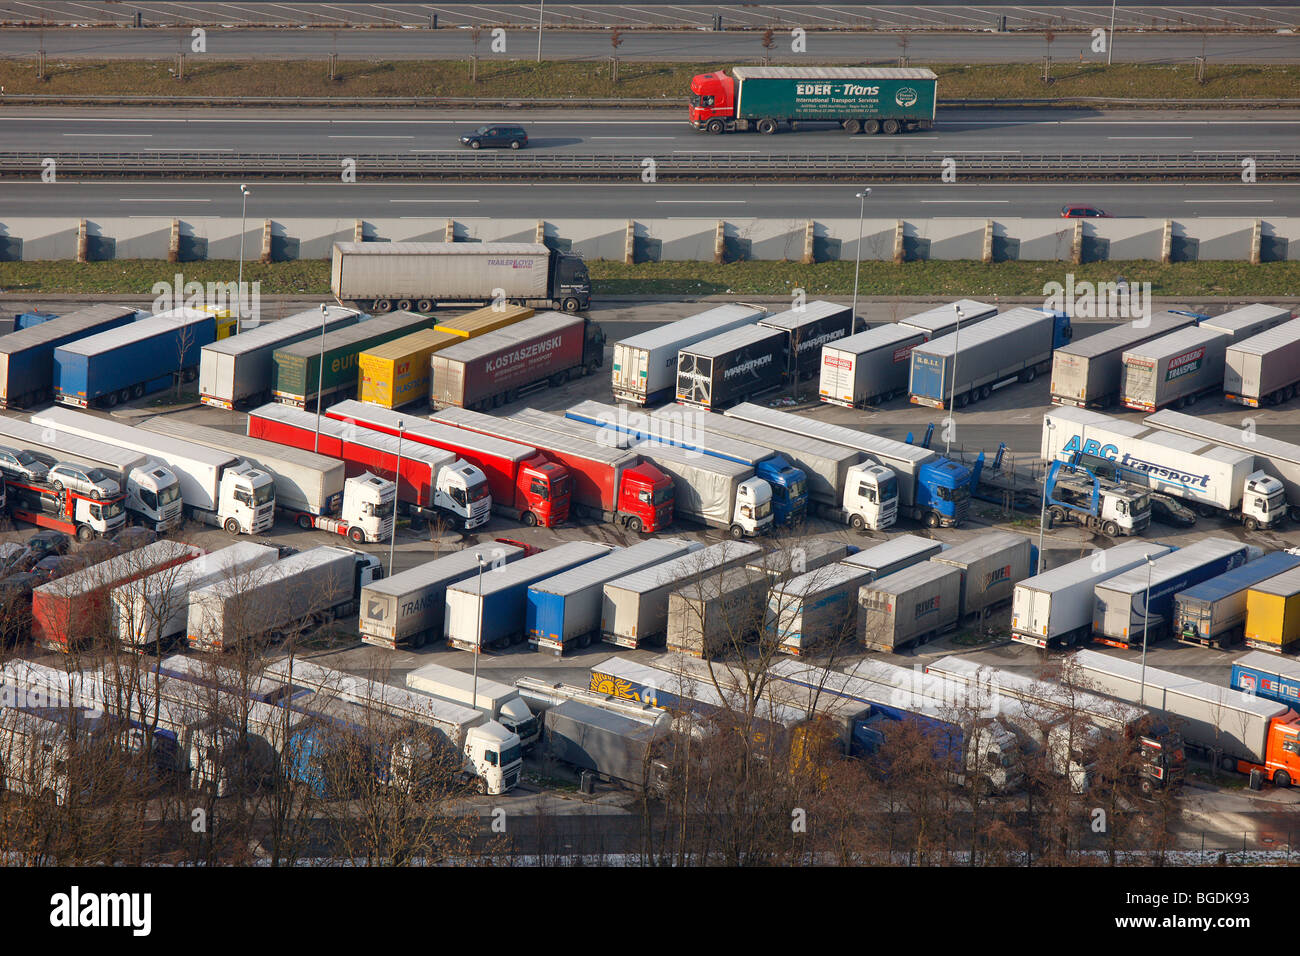 Aerial photo, Autobahn A2 highway, Rhynern rest stop, truck parking lot, drivers' working hours, Hamm, Ruhrgebiet Stock Photo